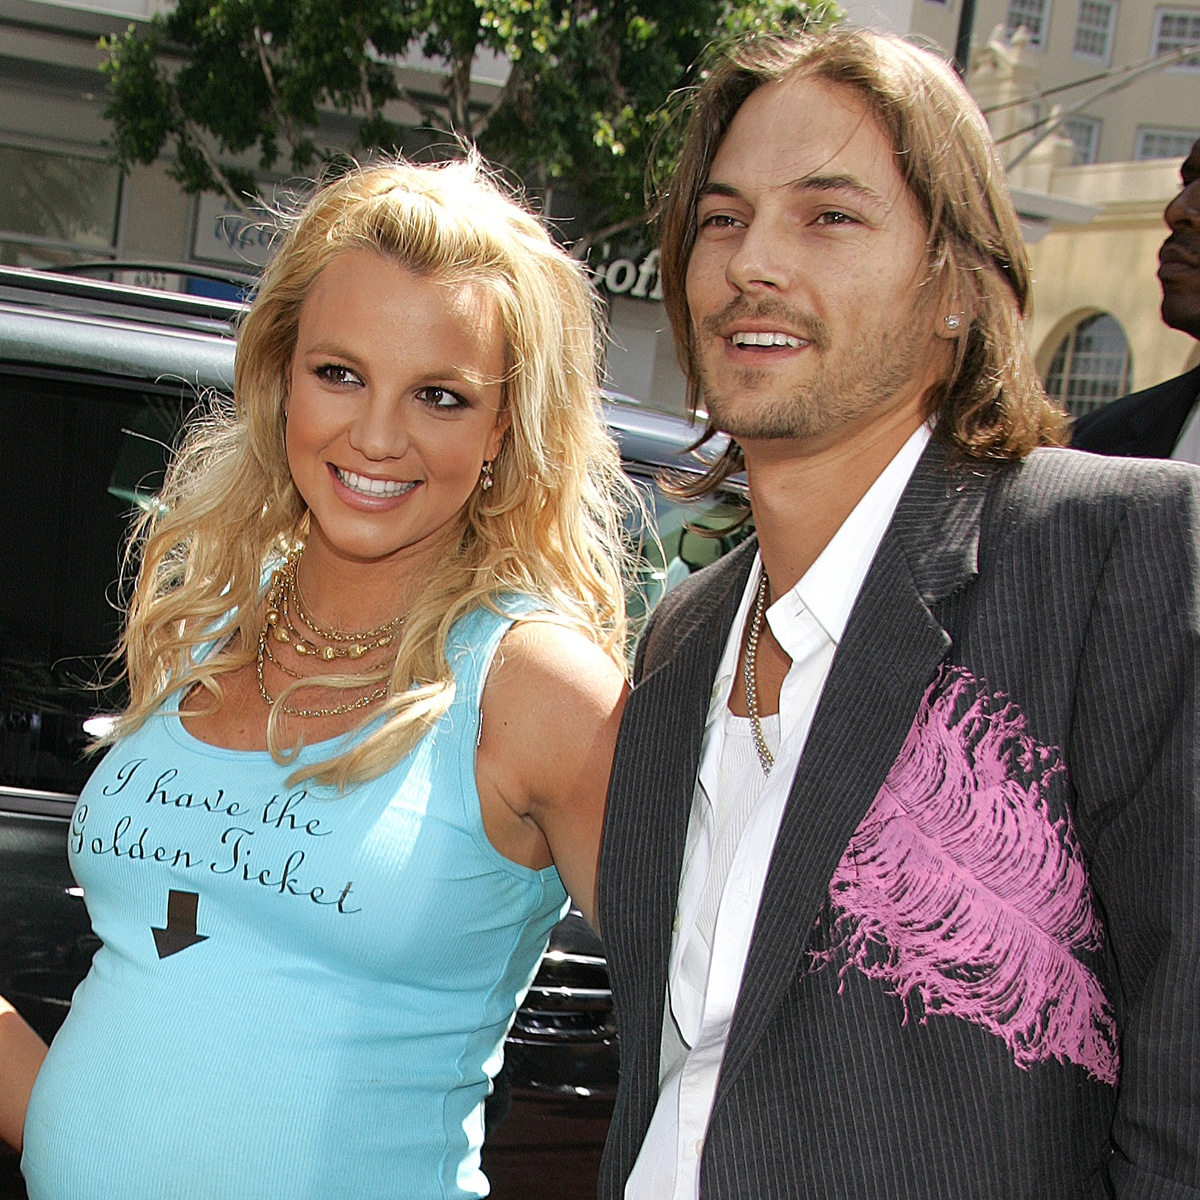 Kevin federline today where is Yahoo is